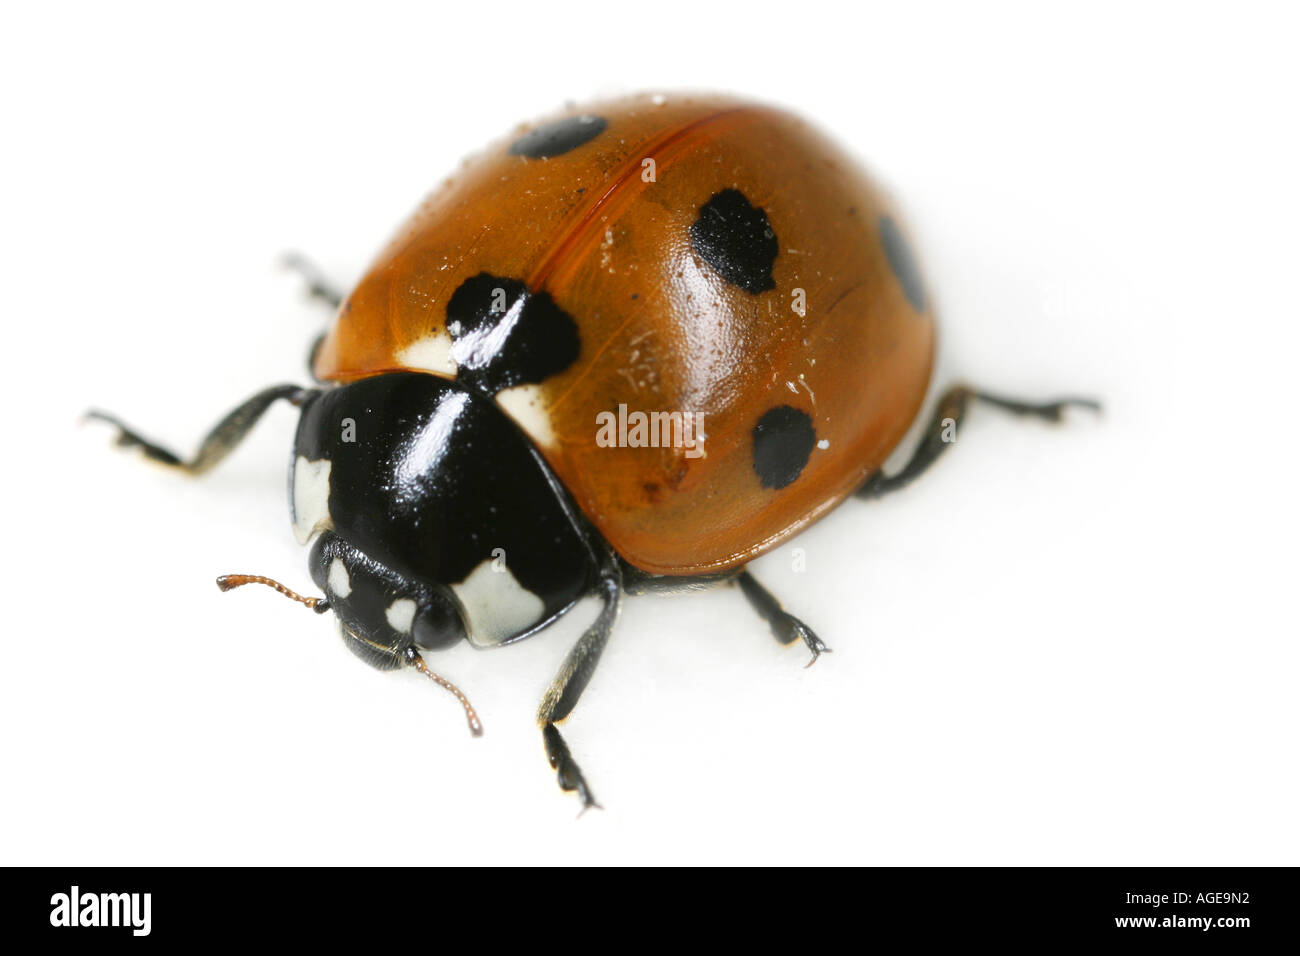 Close up of the Seven Spotted Ladybug, Coccinella septempunctata, on white background Stock Photo